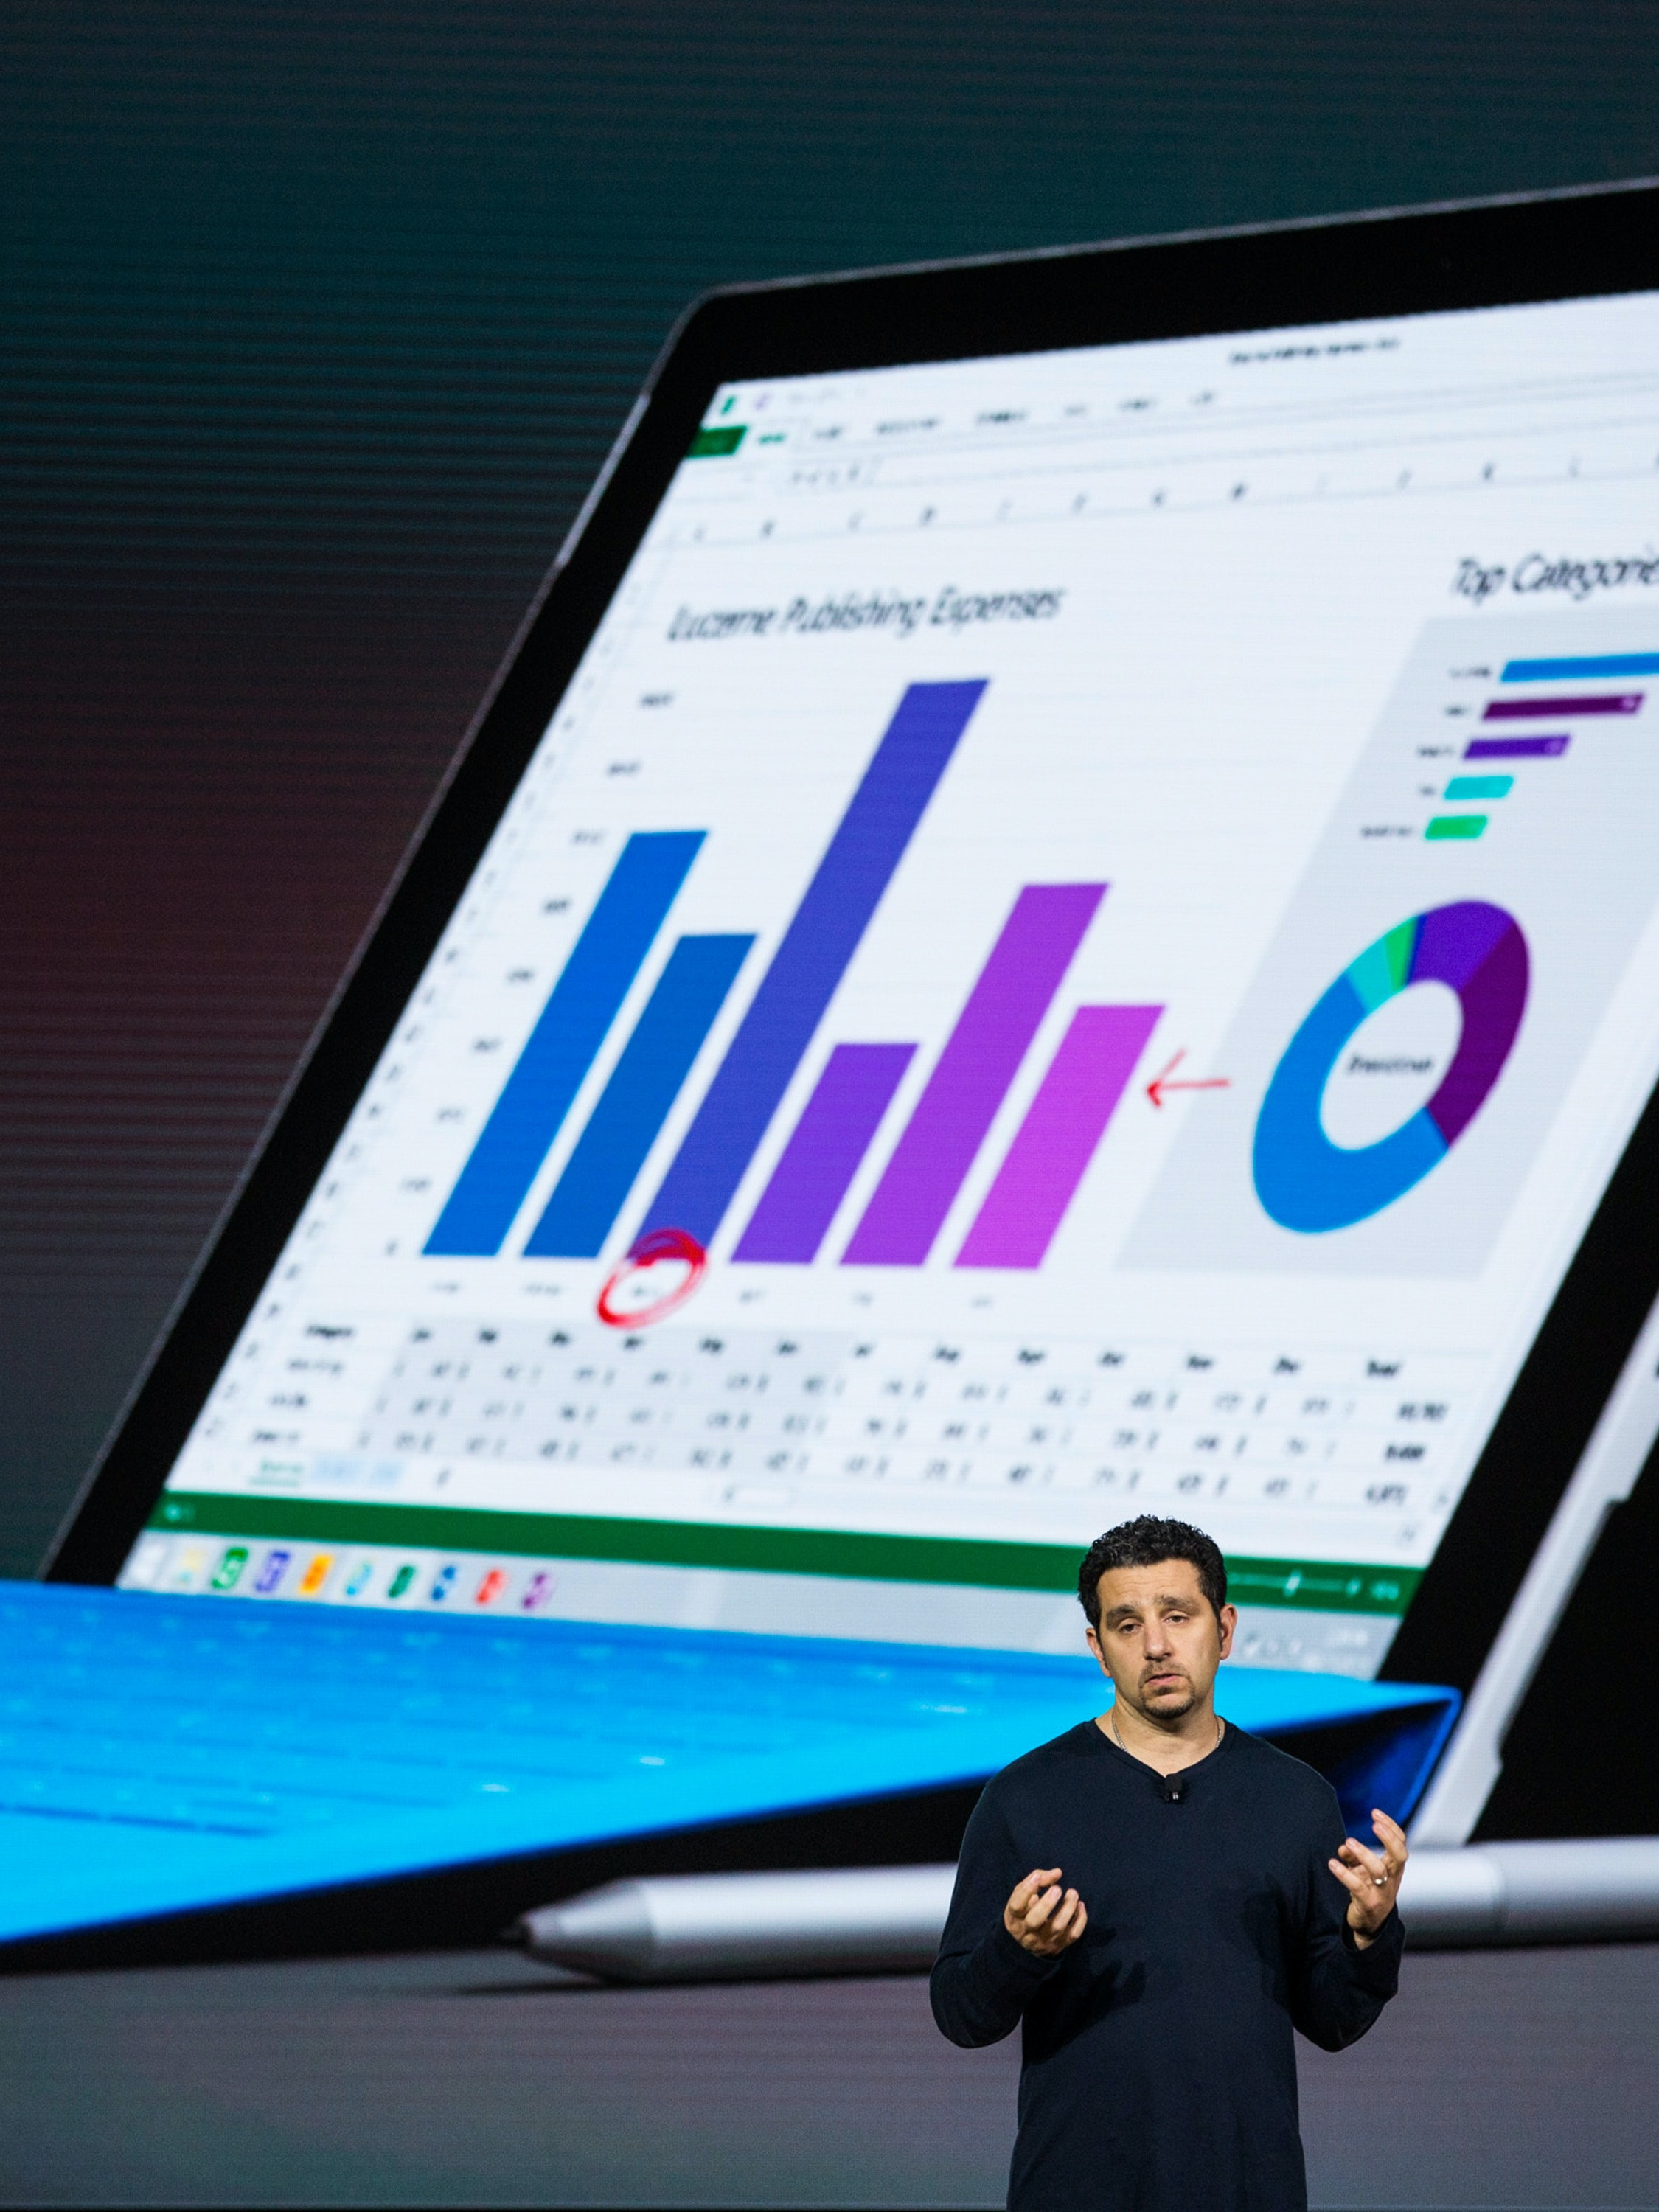 NEW YORK, NY - OCTOBER 06:  Microsoft Corporate Vice President Panos Panay introduces a new tablet titled the Microsoft Surface Pro 4 at a media event for new Microsoft products on October 6, 2015 in New York City. Microsoft also unveiled a virtual reality head set titled the HoloLens, a phone titled the Lumia 950, a laptop titled the Surface Book and a biometrics wristband titled the Band 2.  (Photo by Andrew Burton/Getty Images)